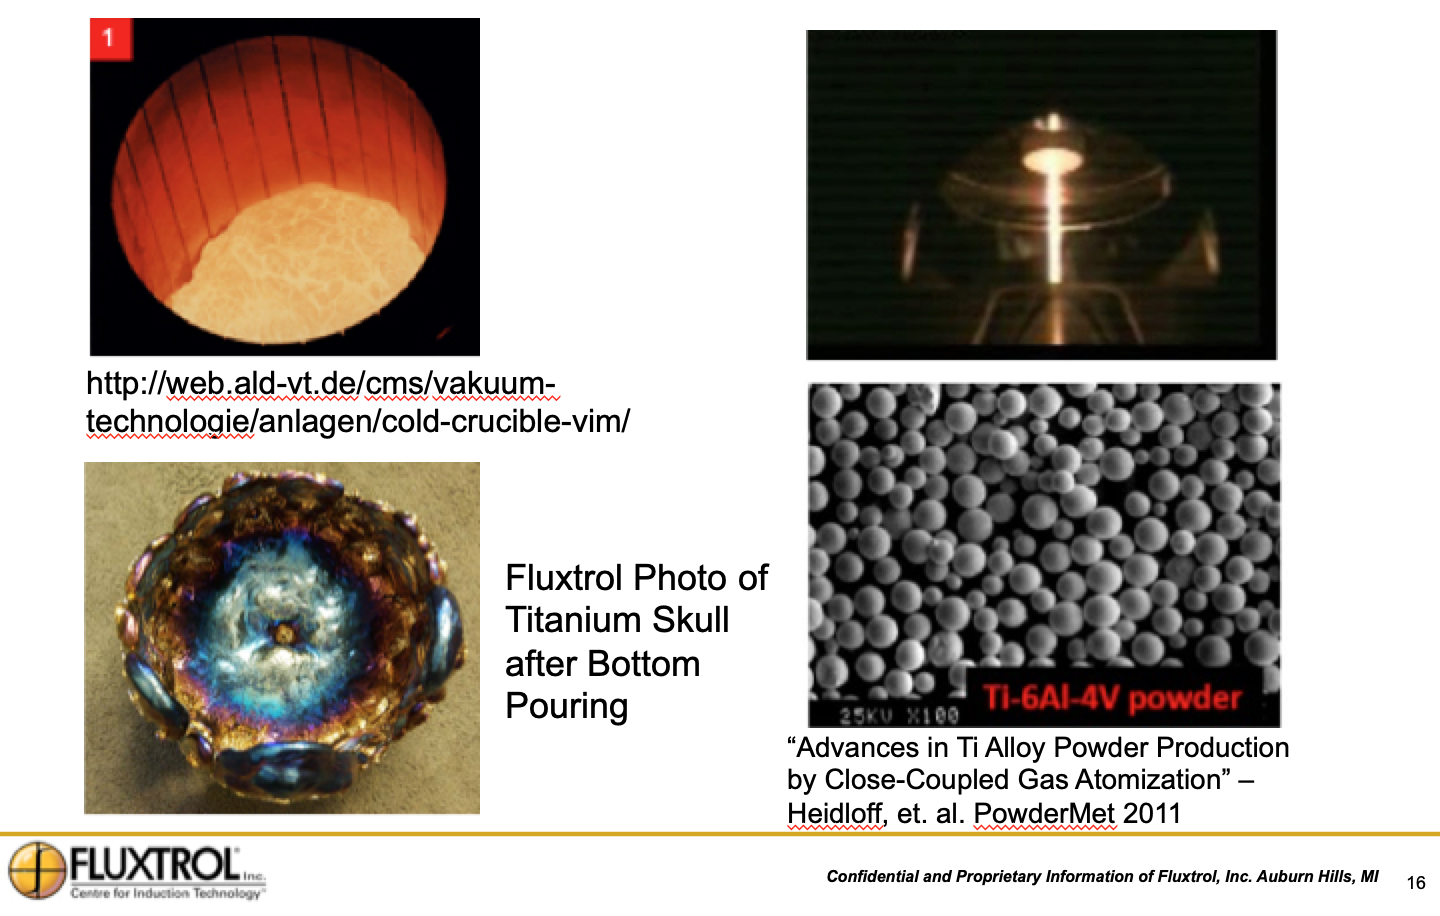 Fluxtrol | Applications of Induction Heating Enabling Advancement in